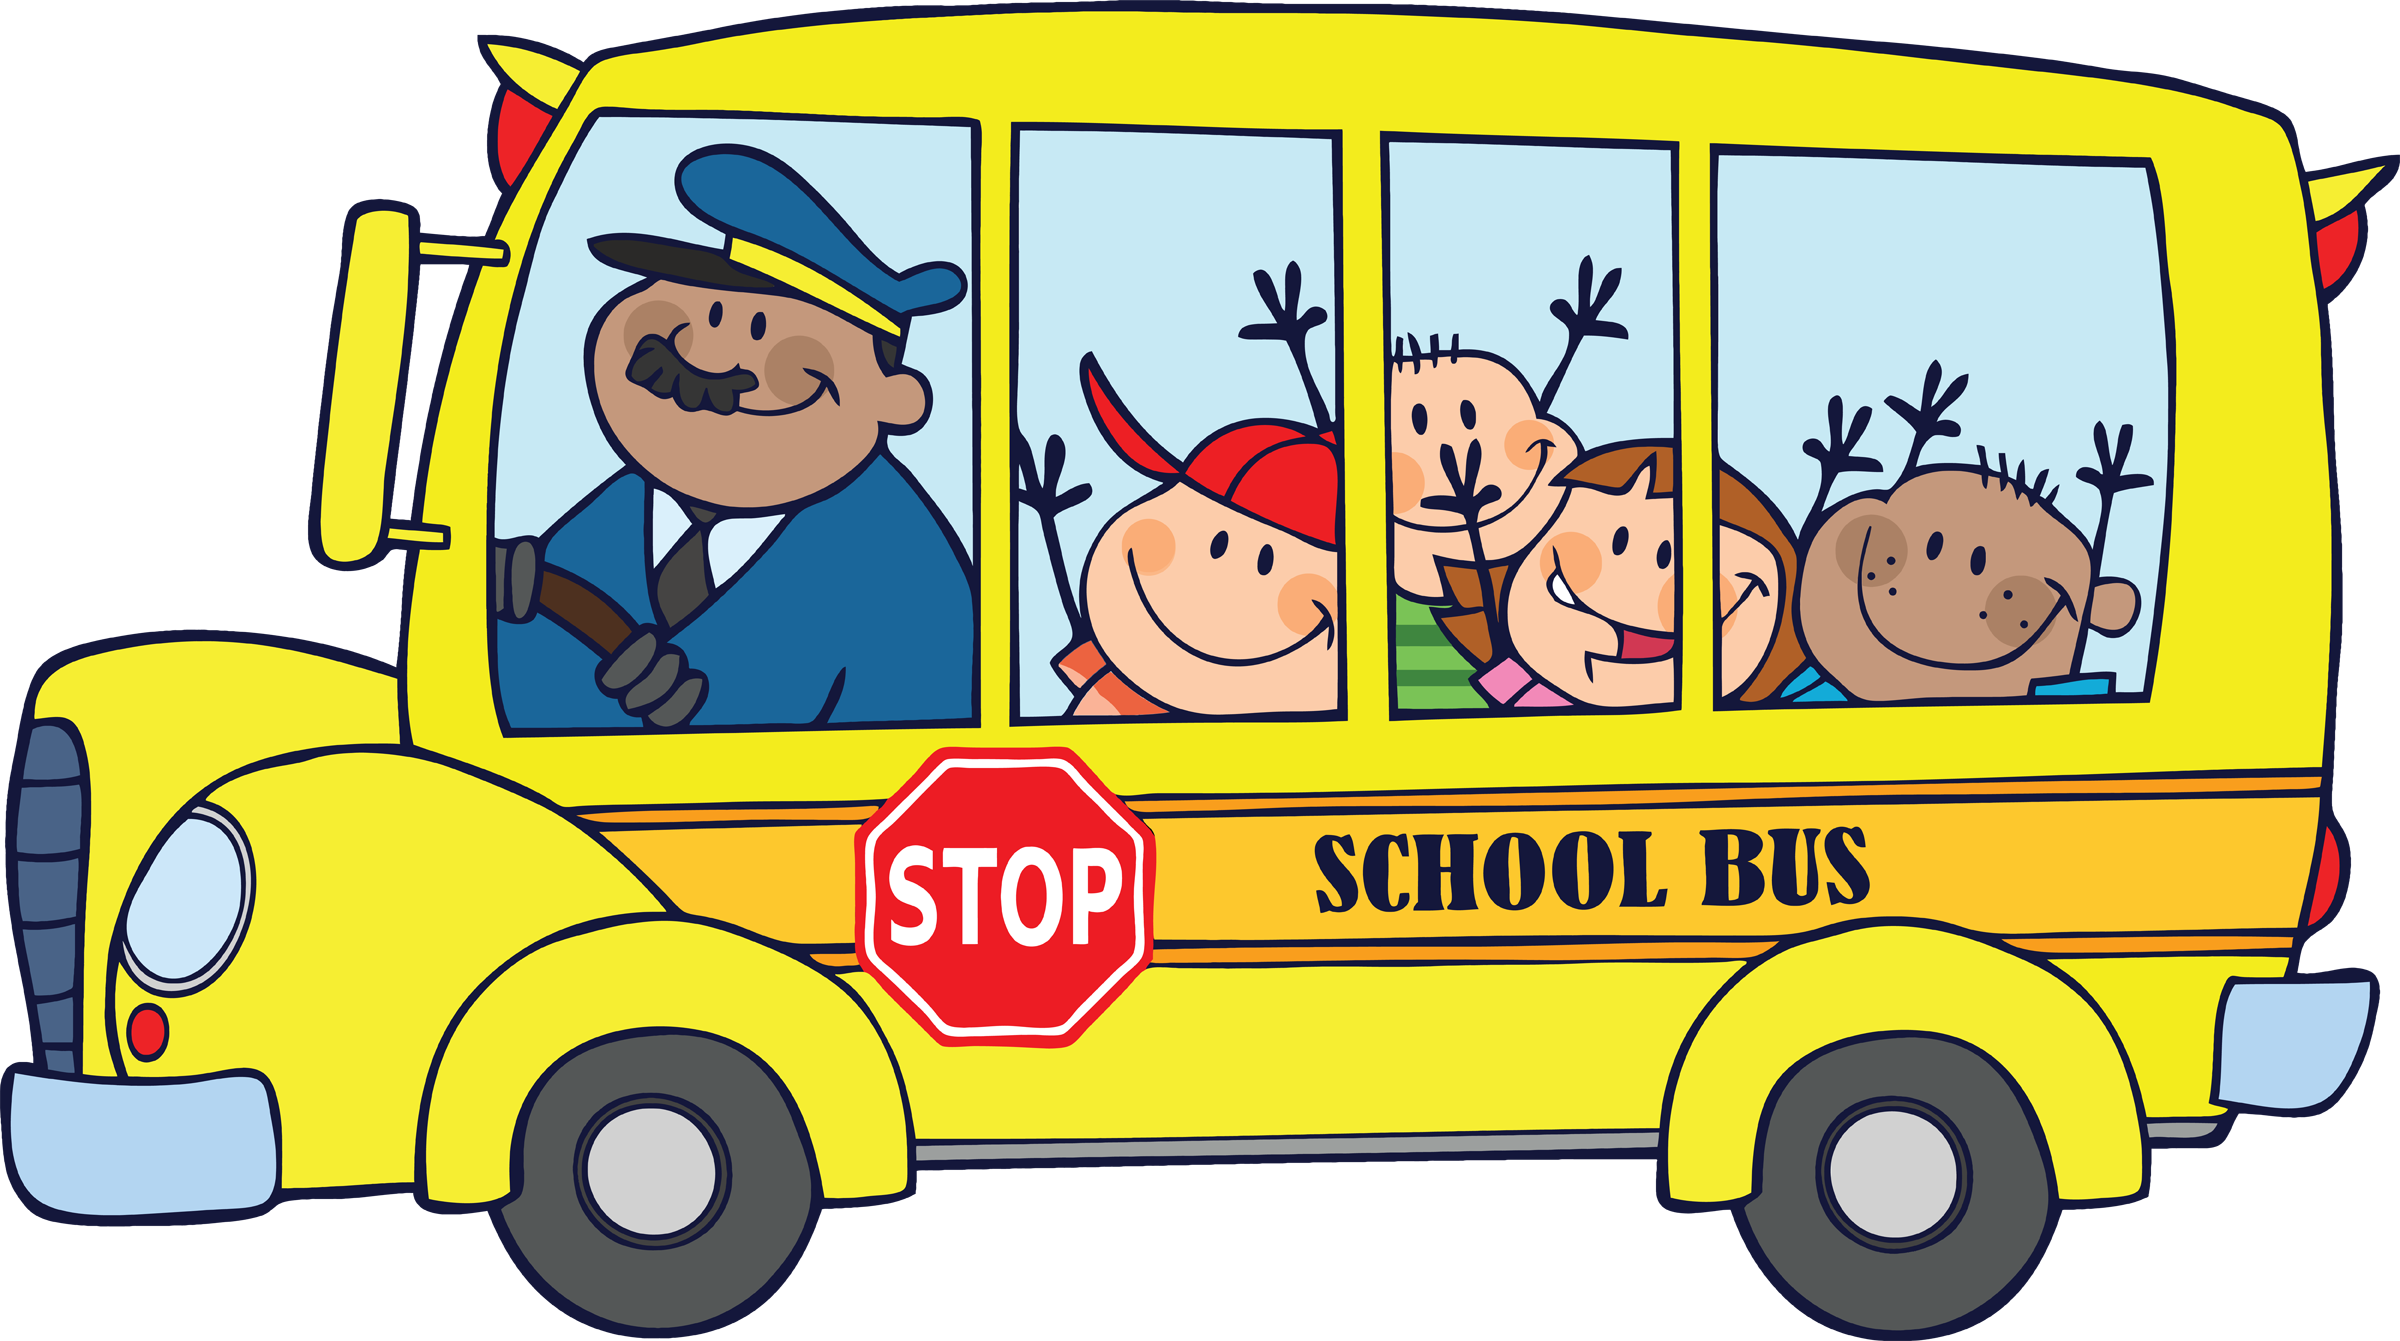 Free clipart of school bus clipart free stock School Bus Driver Quotes | Clipart Panda - Free Clipart Images ... clipart free stock